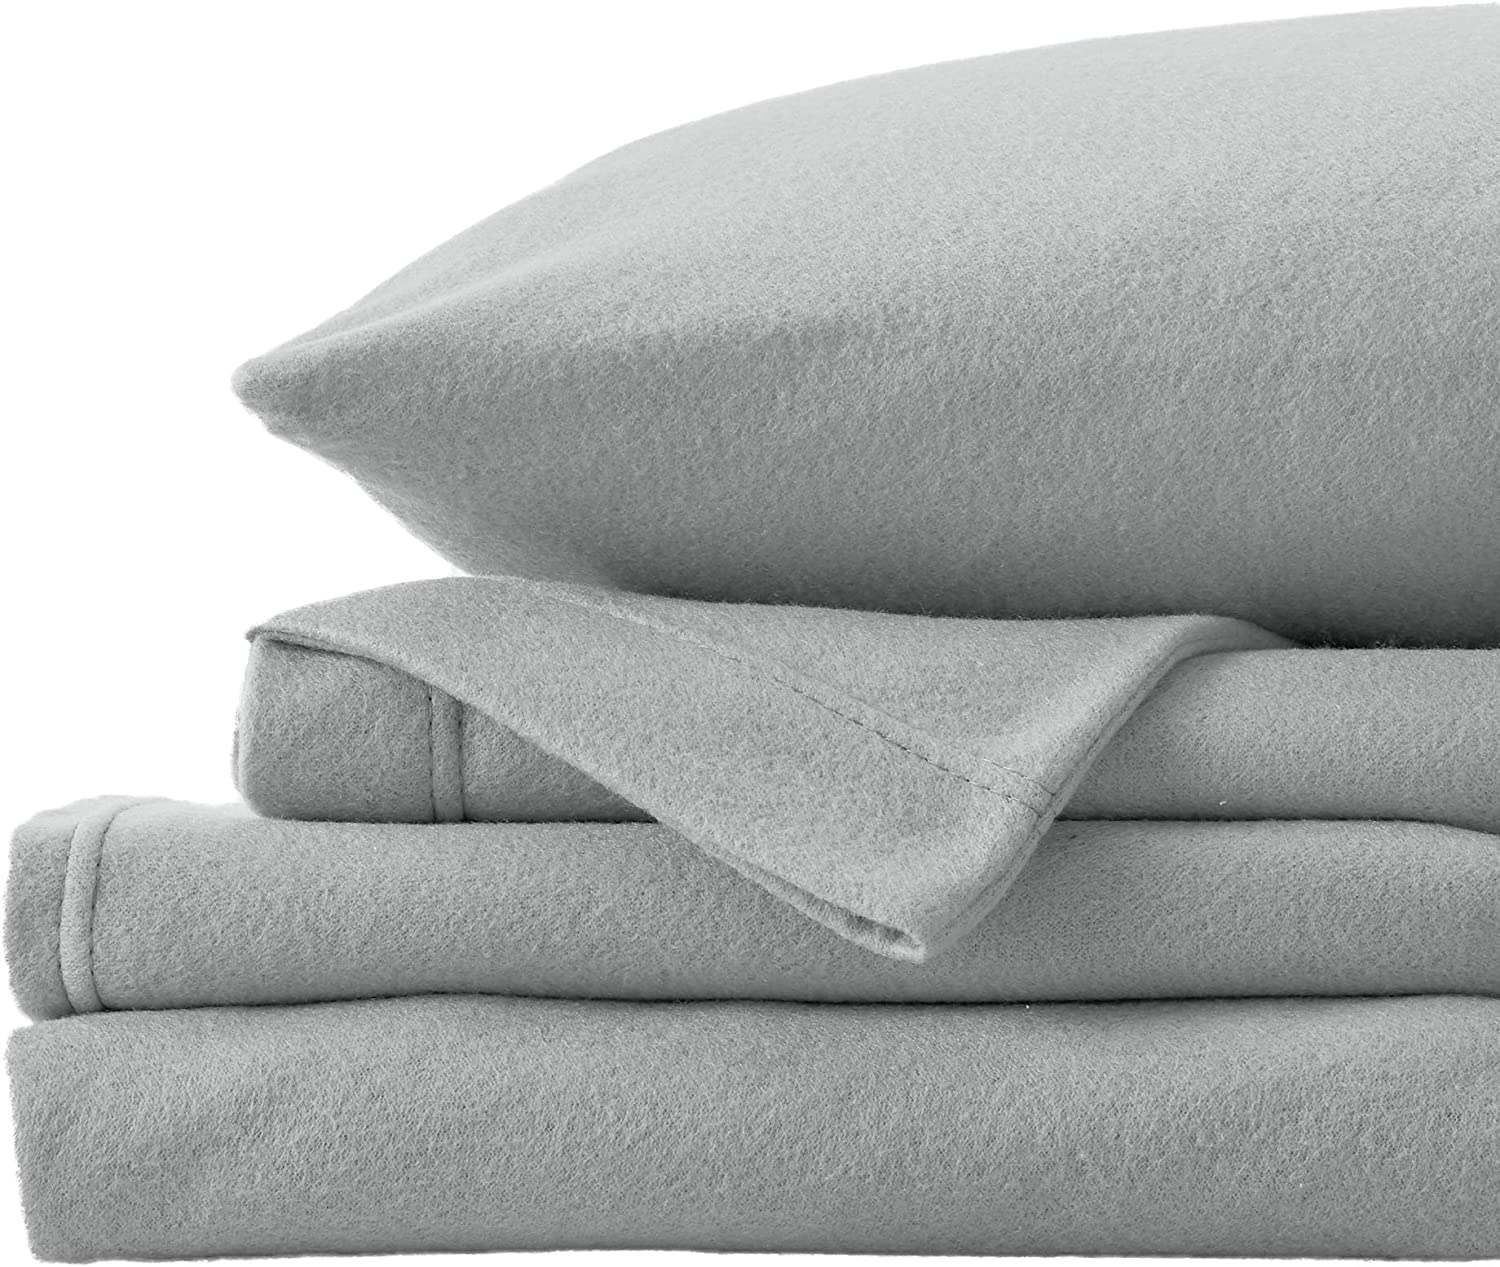 Super Soft Extra Plush Fleece Sheet Set. Cozy, Warm, Durable, Smooth, Breathable Winter Sheets in Solid Colors. Christina Collection (Full Paloma Grey)